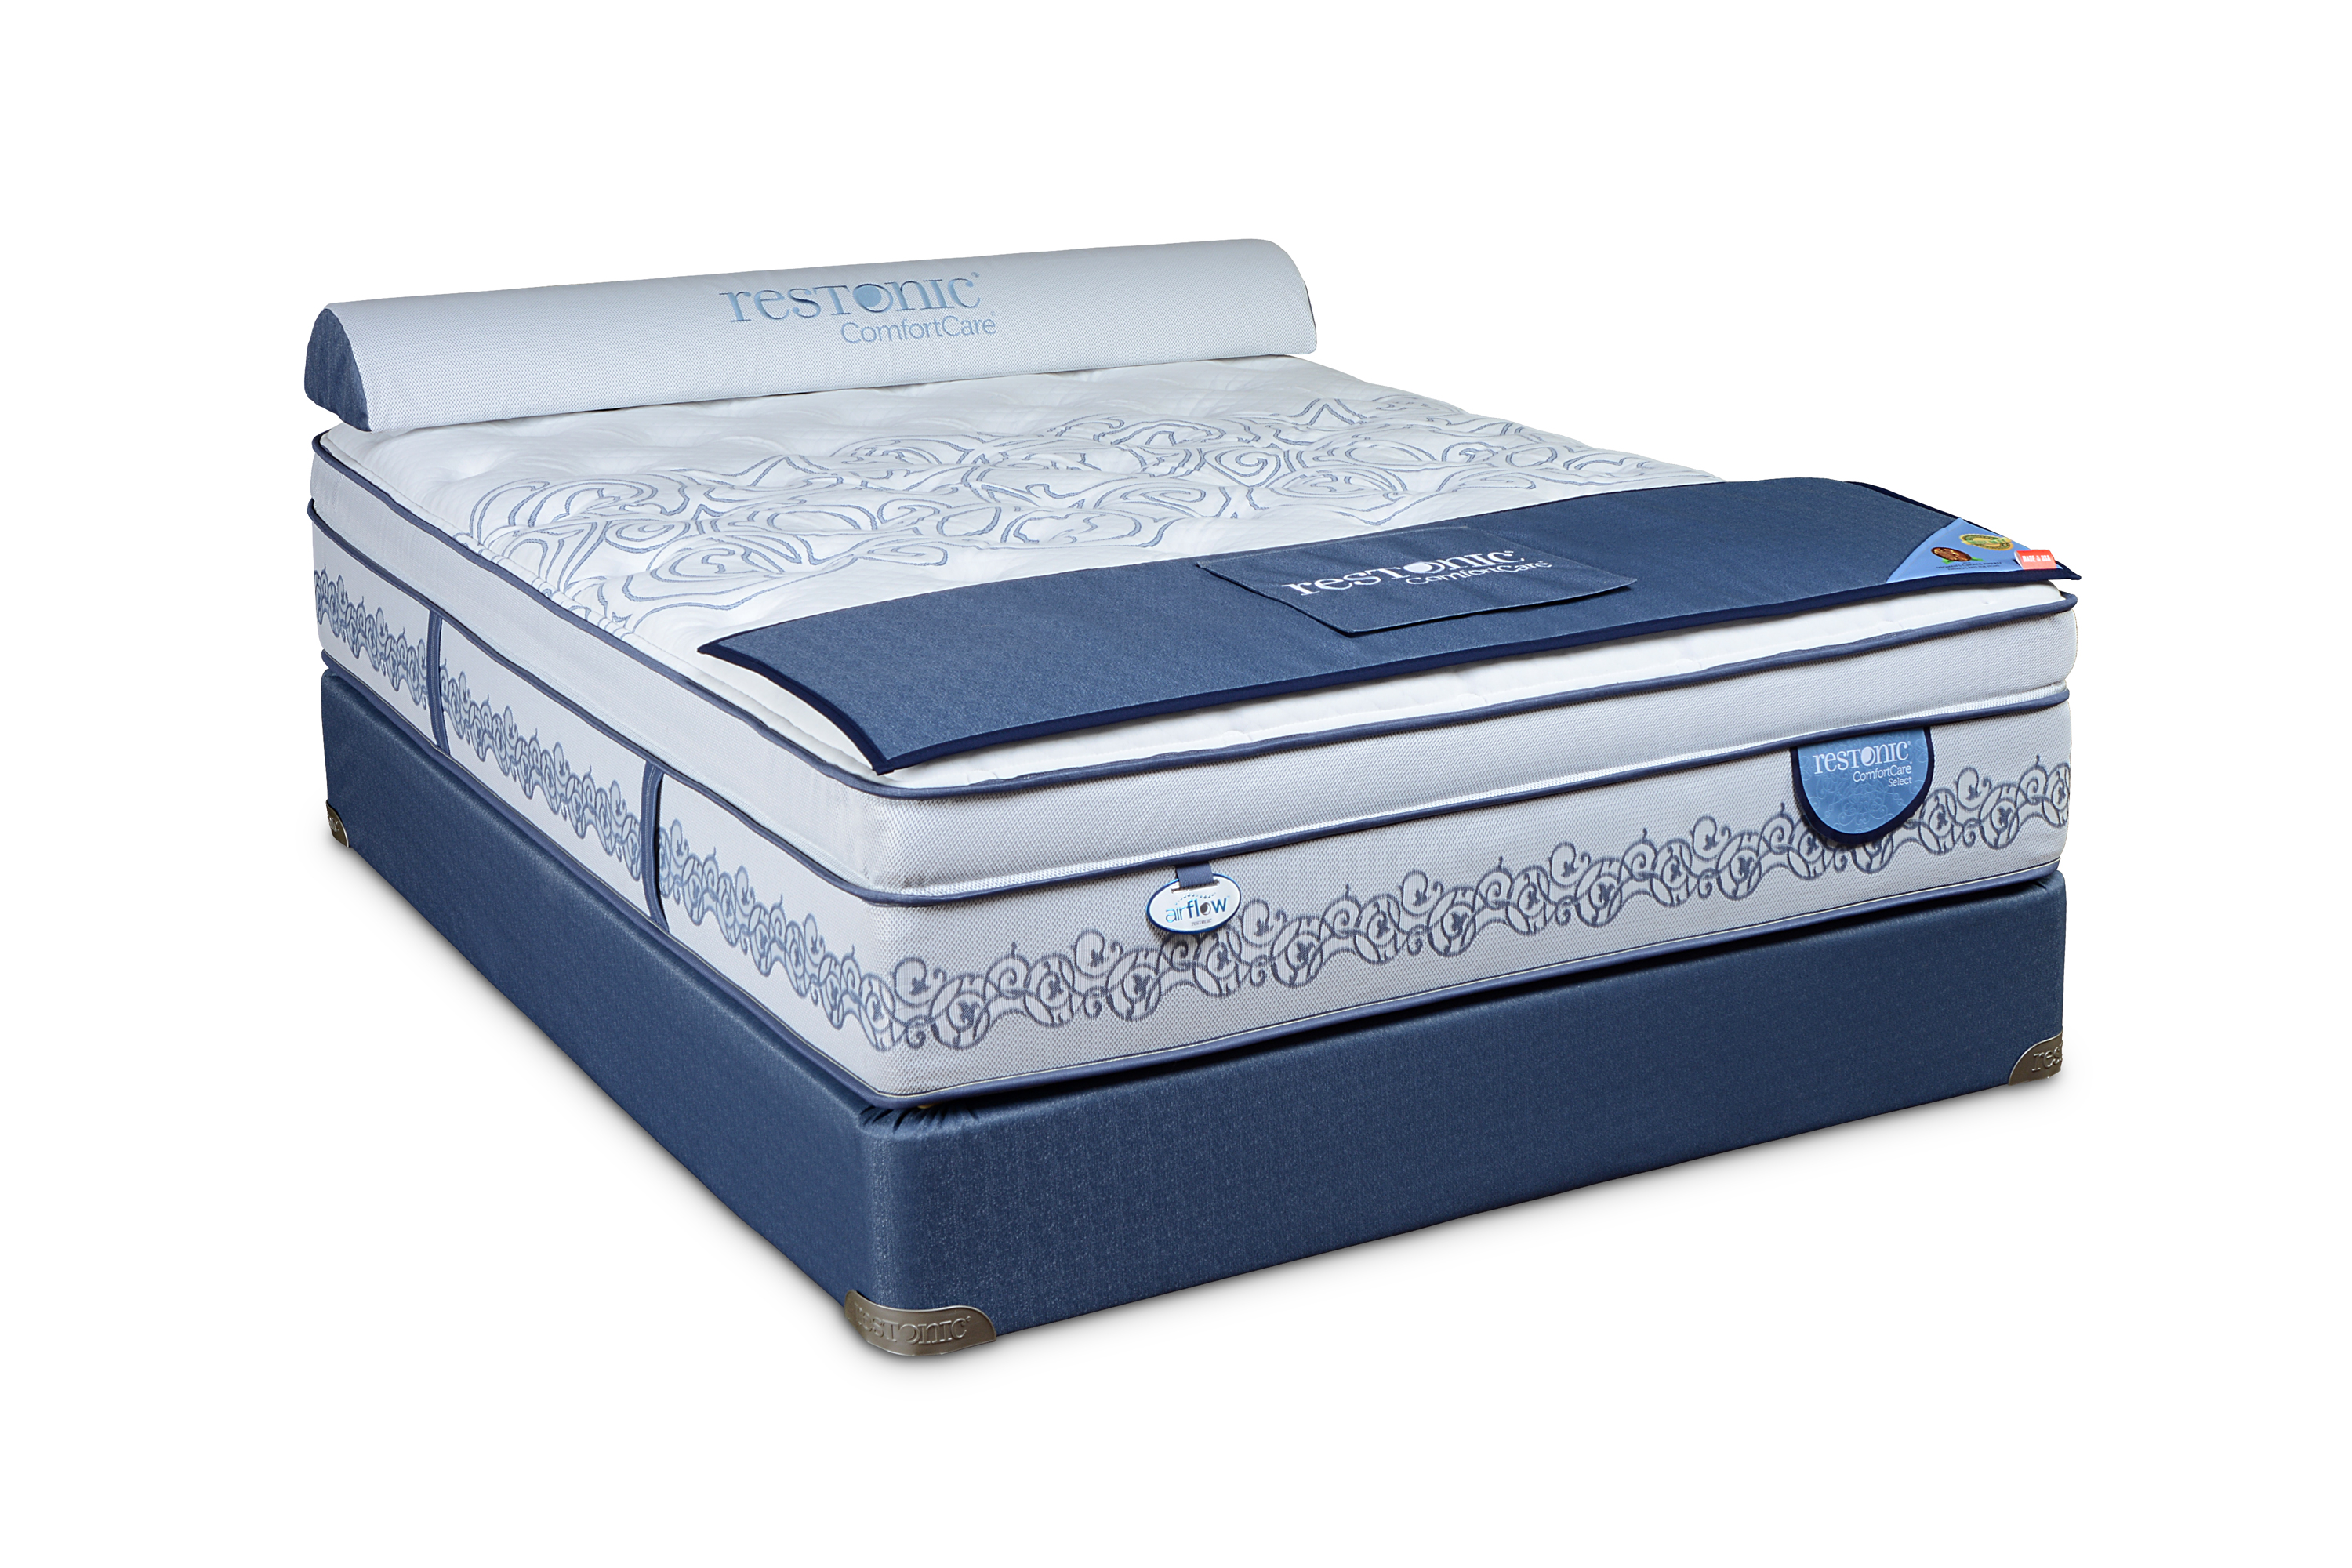 Restonic Comfortcare Mattress Reviews